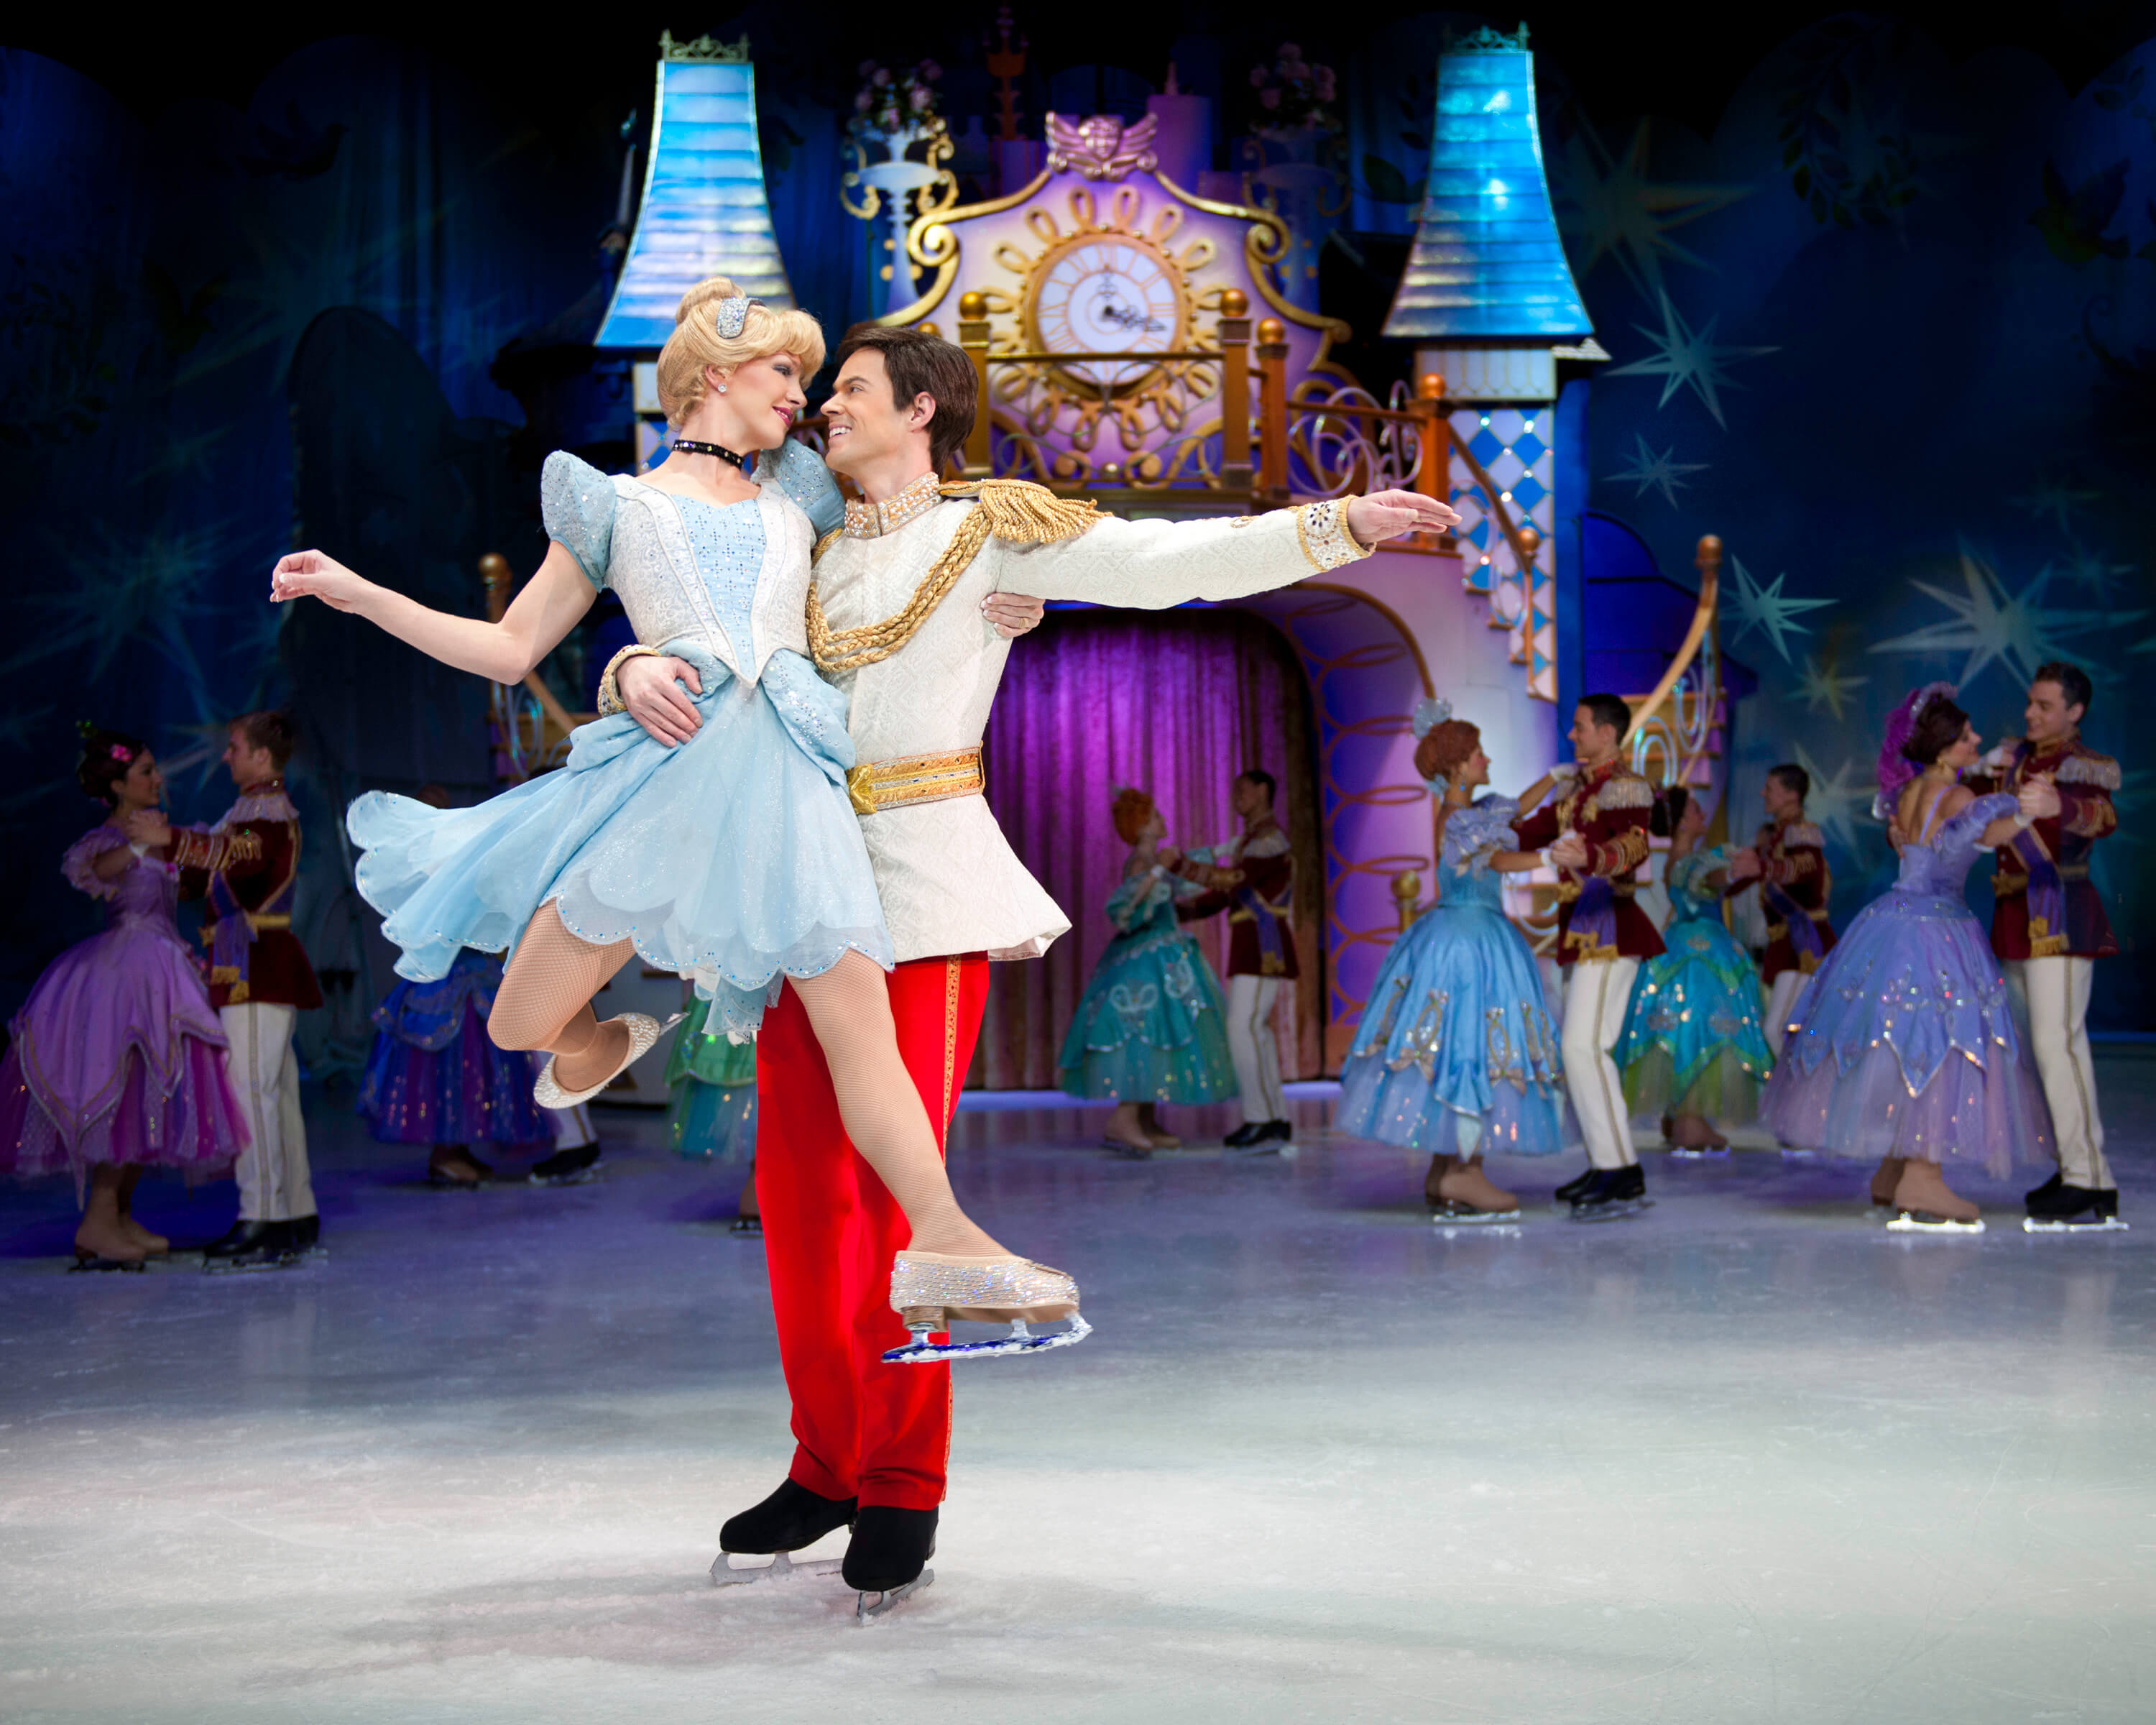 Cinderella-and-Prince-Charming-dance-at-the-ball